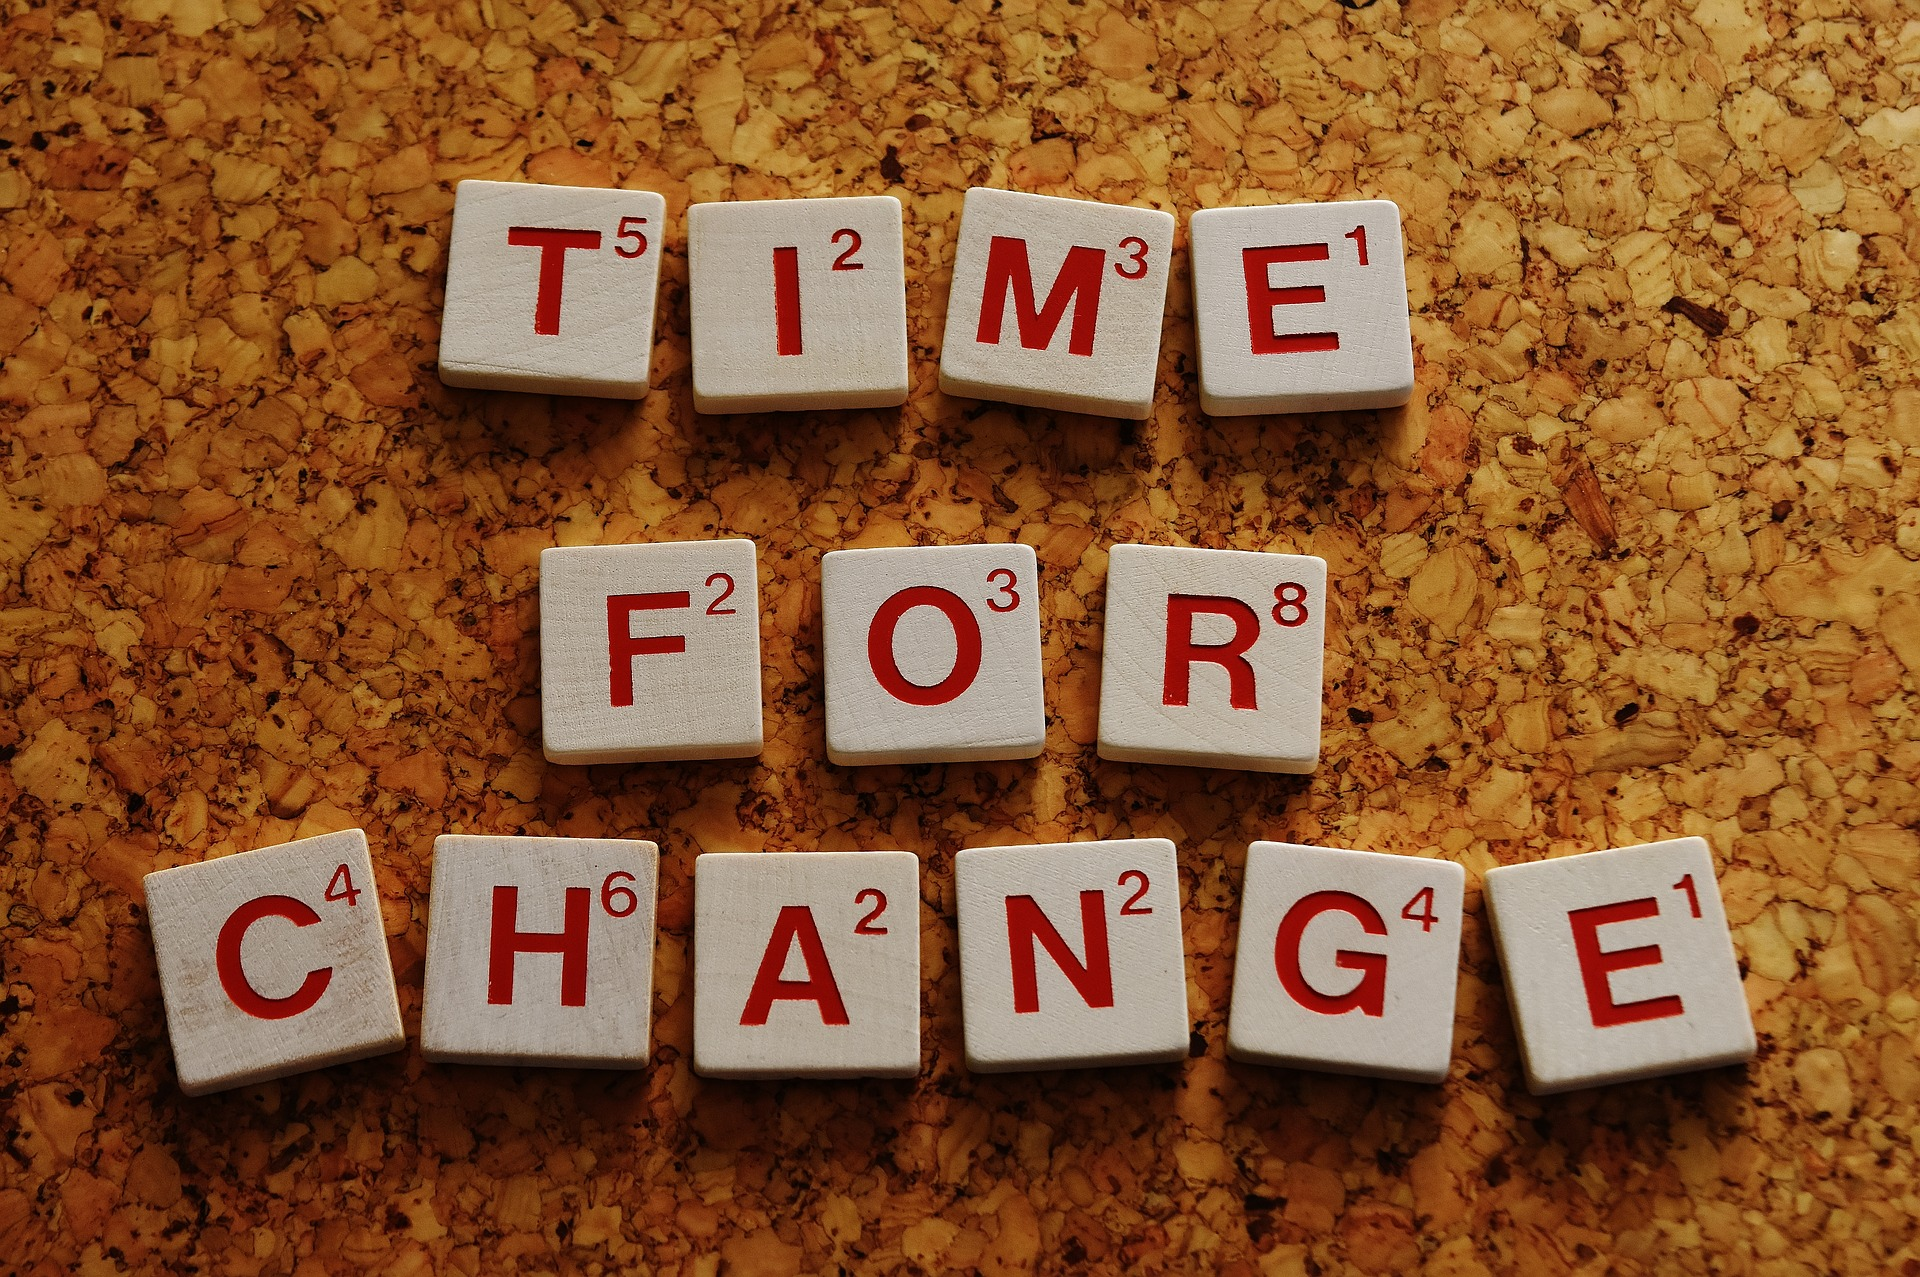 7 Changes to Make Before 2018 Ends